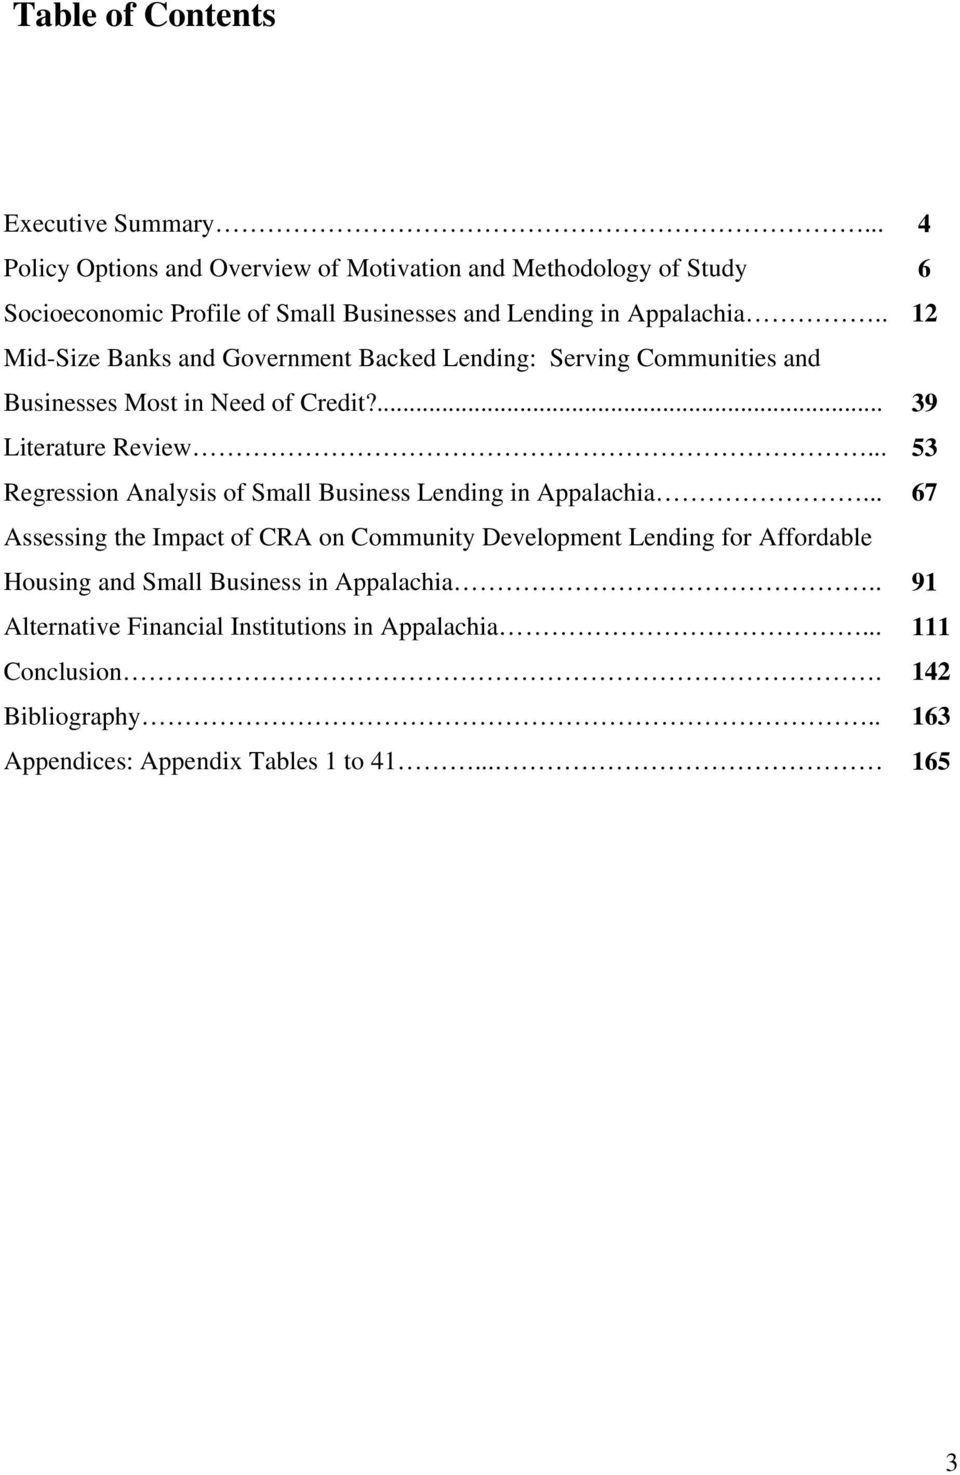 . 12 Mid-Size Banks and Government Backed Lending: Serving Communities and Businesses Most in Need of Credit?... 39 Literature Review.